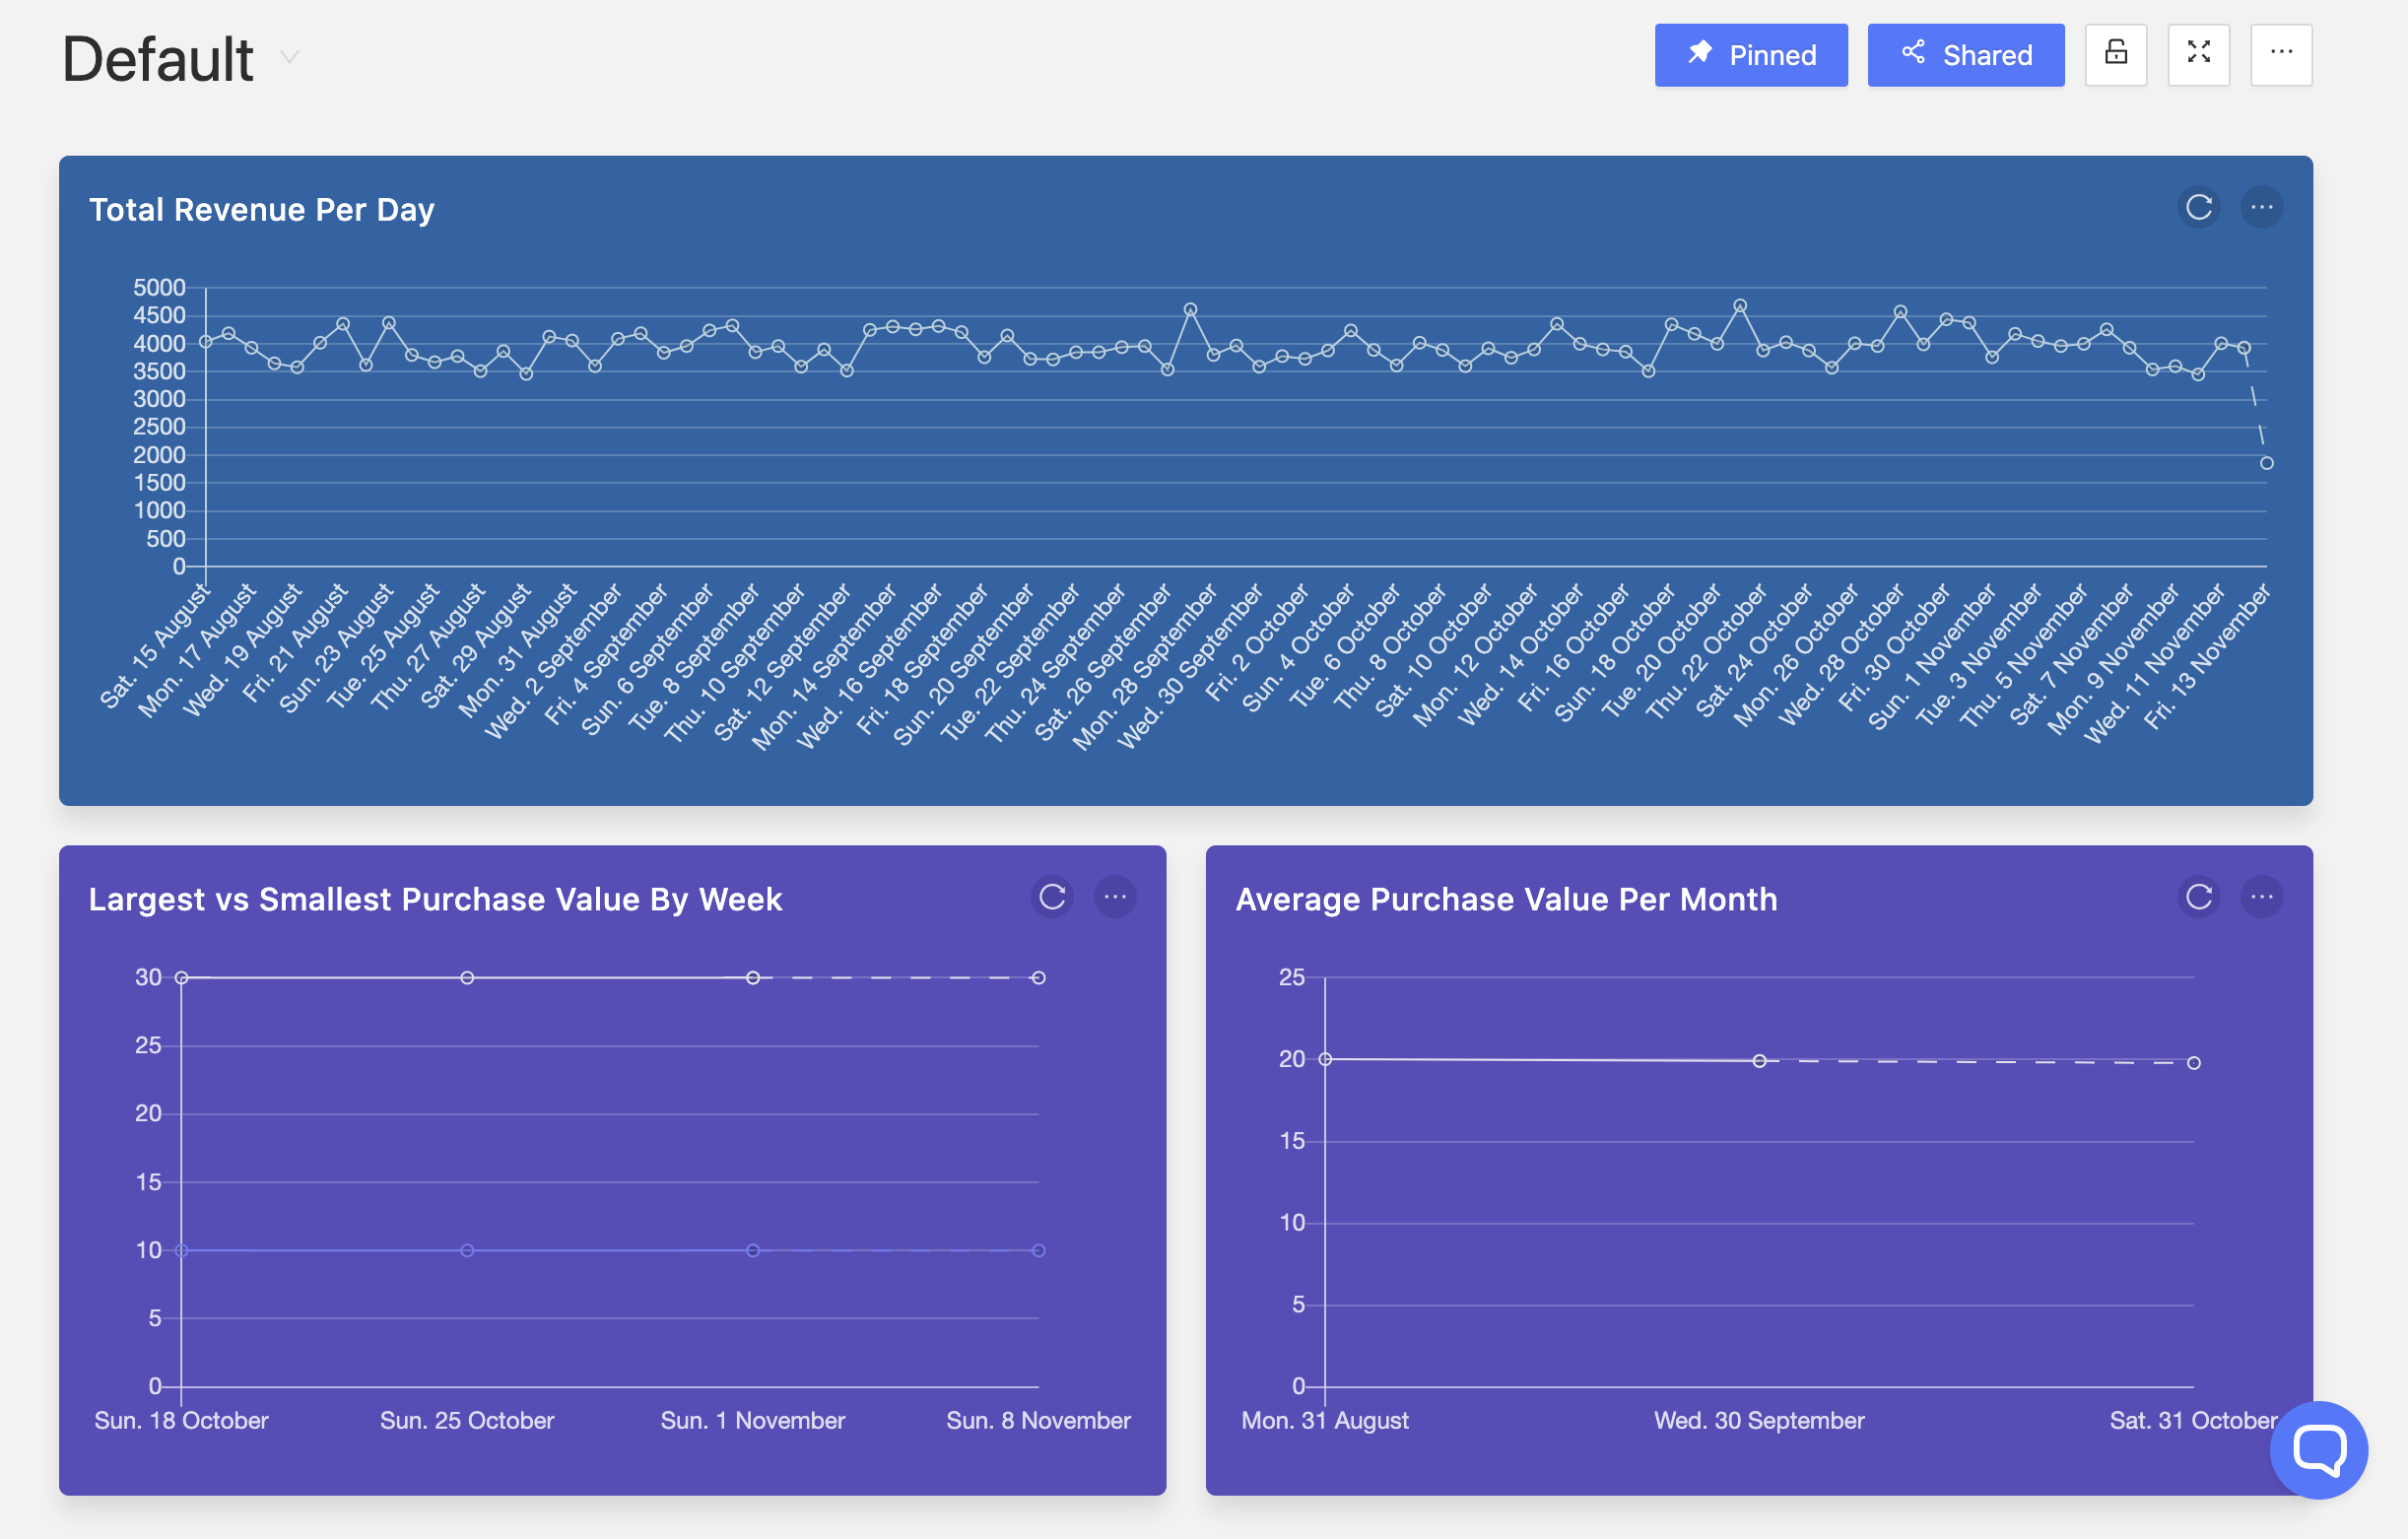 Operations Dashboard Image